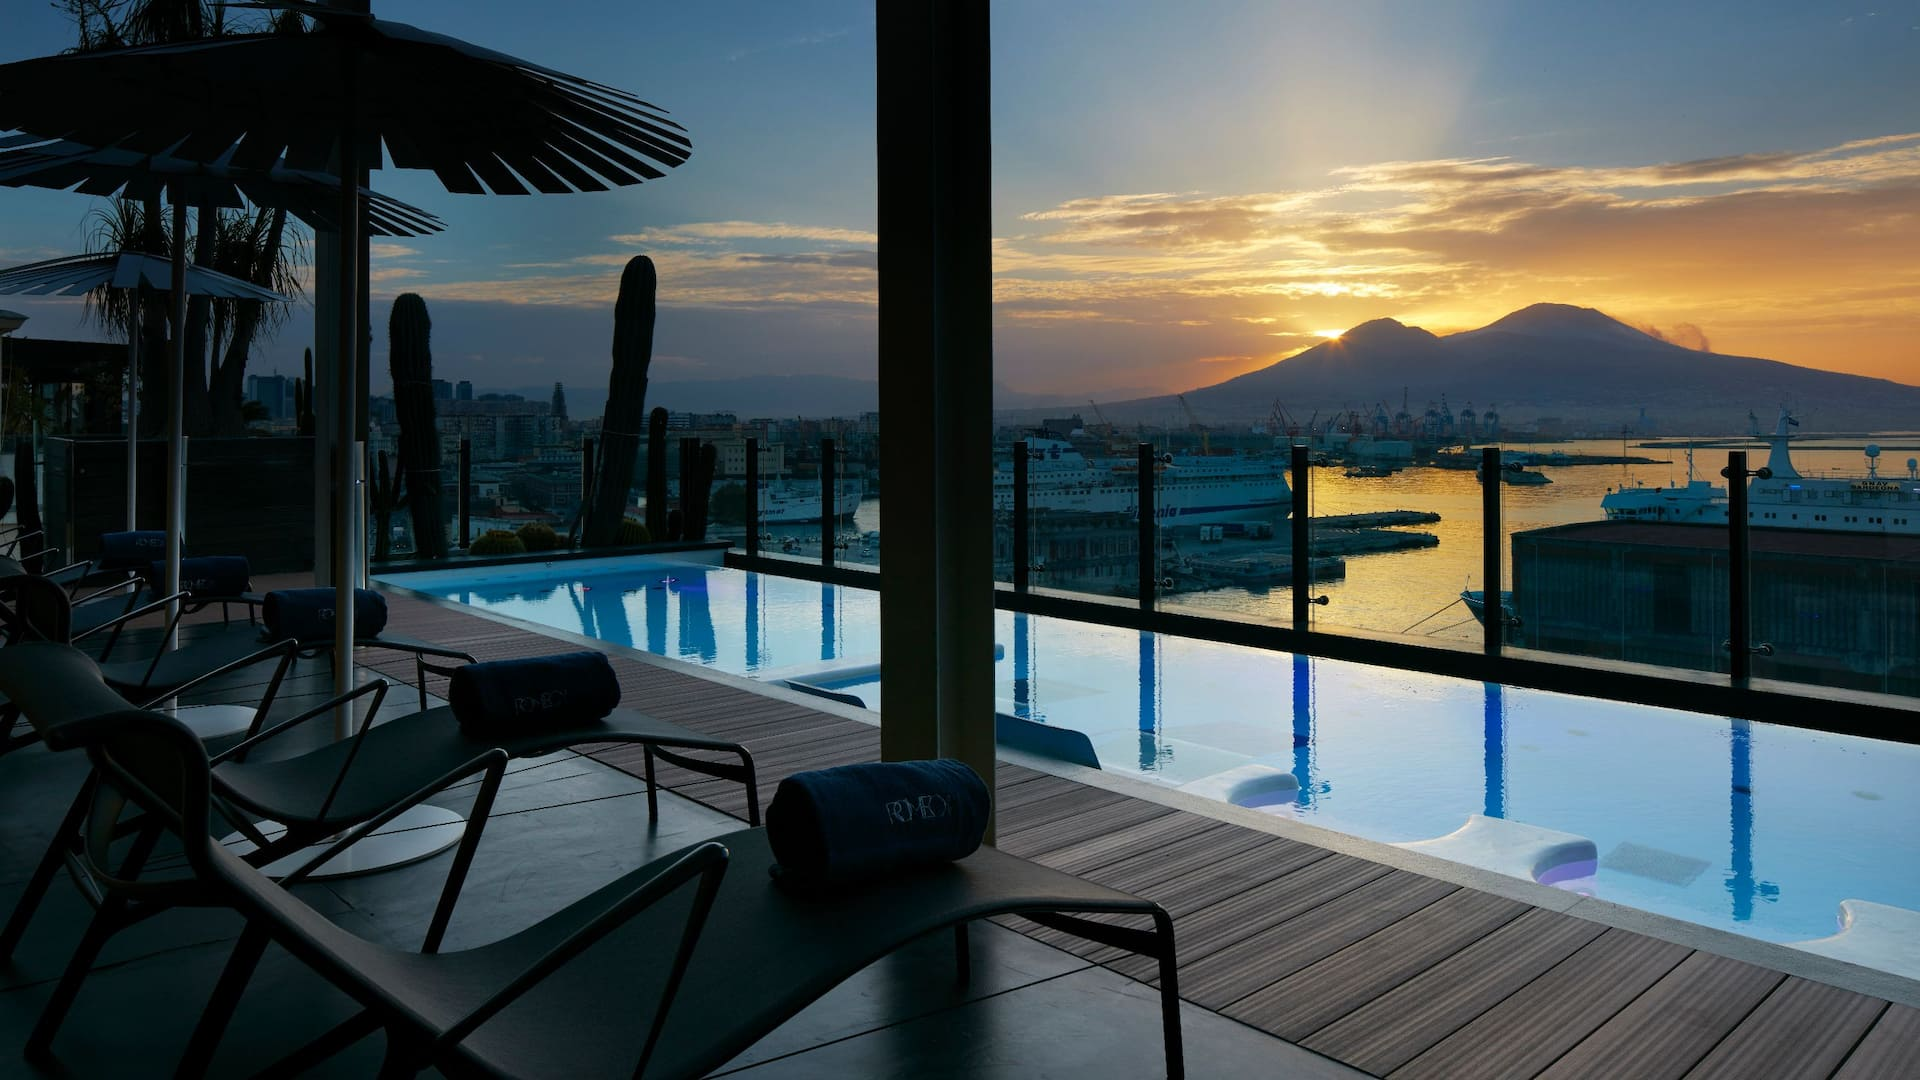 Hotel pool with mountain sunset view